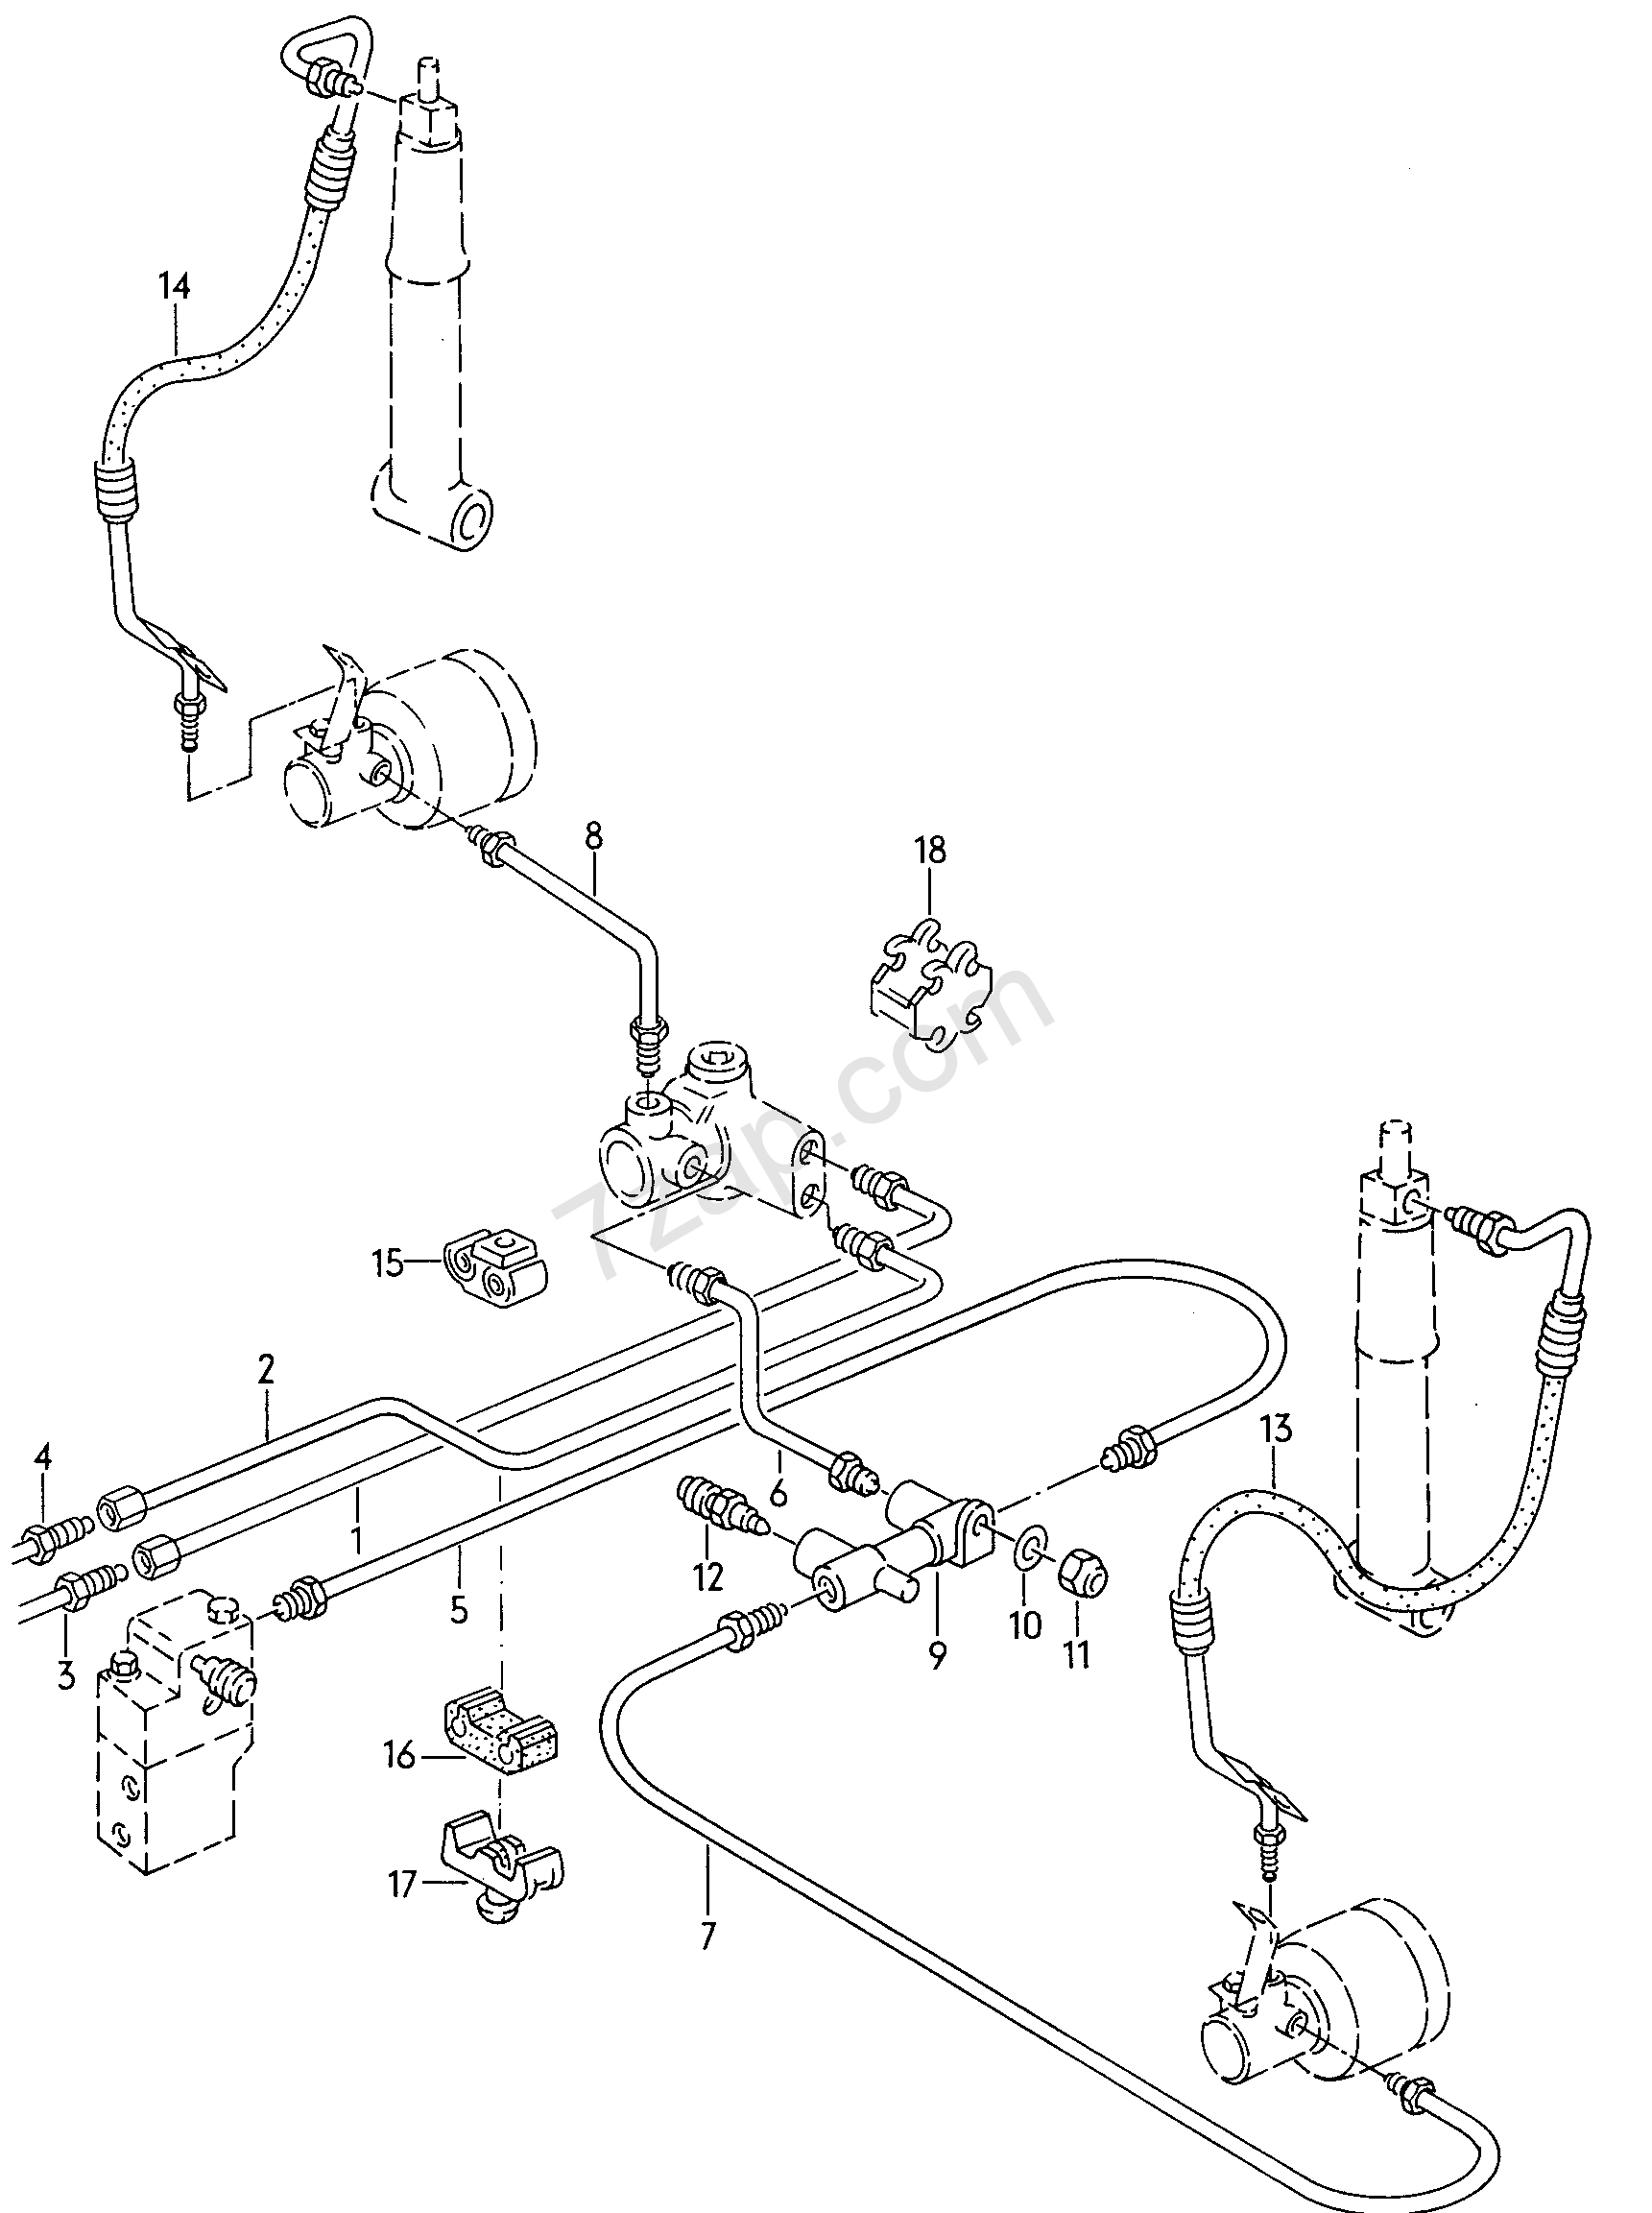 connecting parts for self- levelling Audi 100/Avant